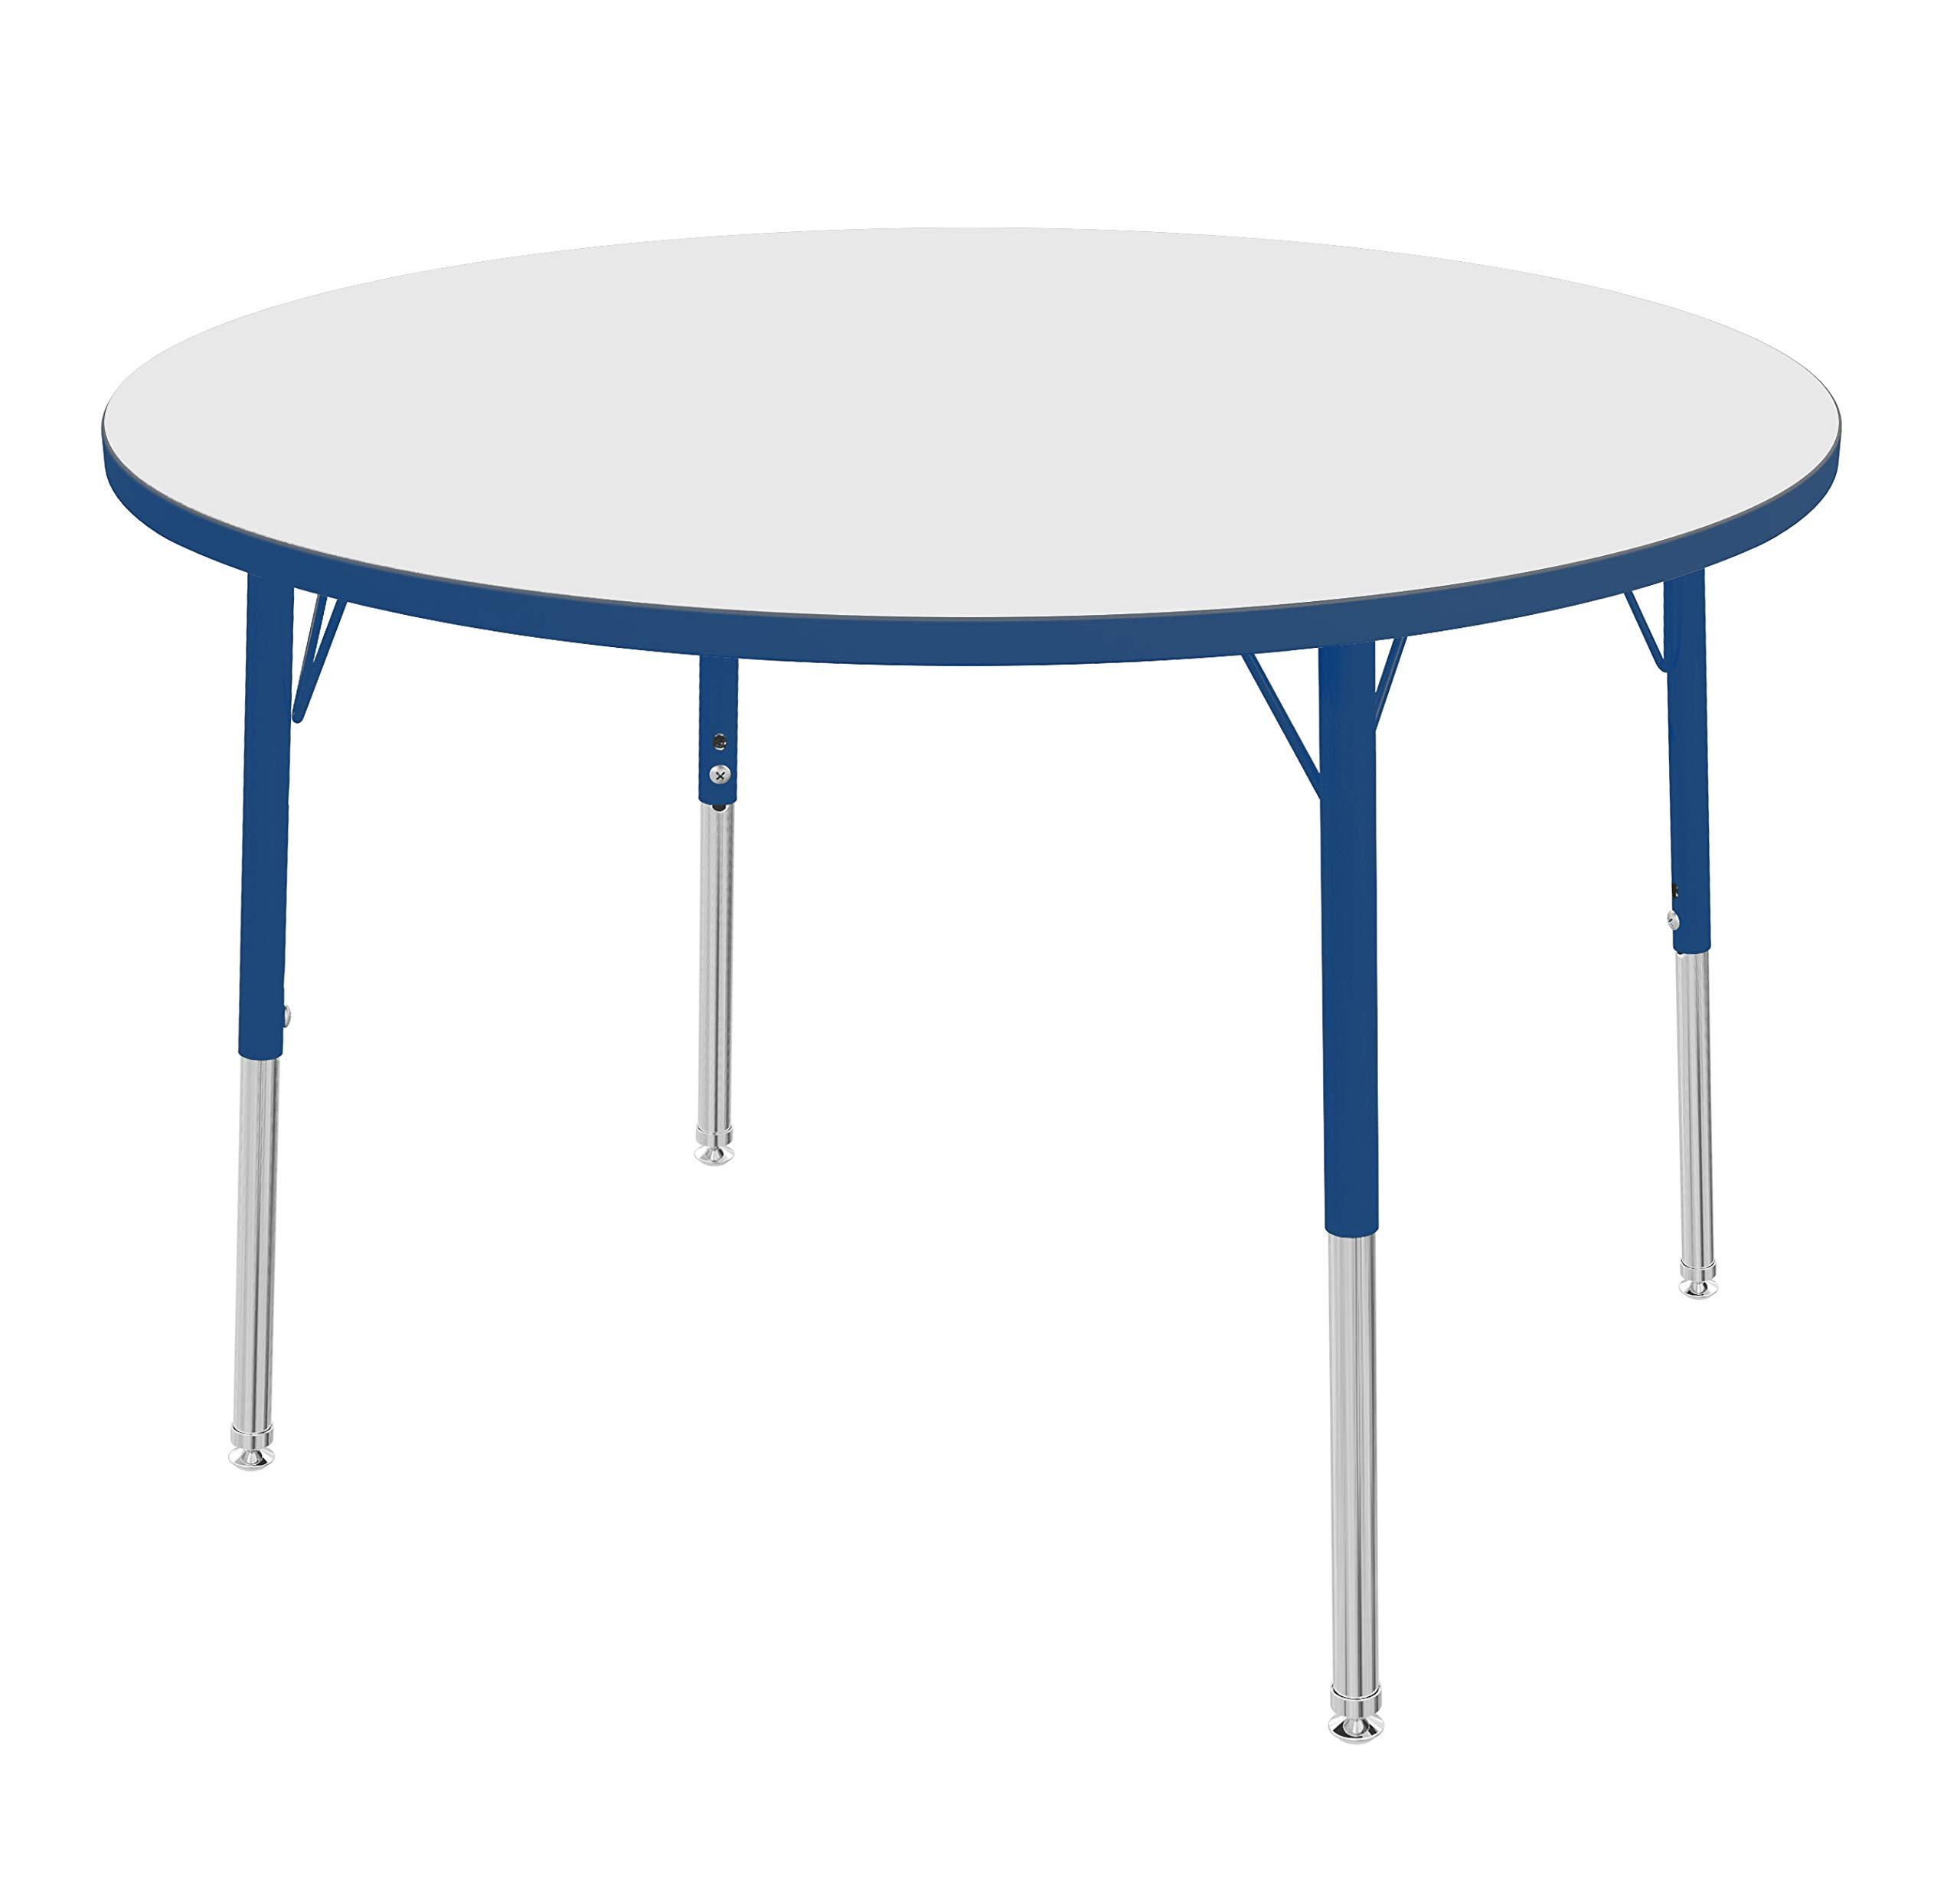 """Marco Group MGA2245-26-ABLU 42"""" Round Adjustable Height Classroom Activity Tables (16""""- 24"""") Toddler Size, Dry Erase-Top, Blue-Edge, Blue Leg"""